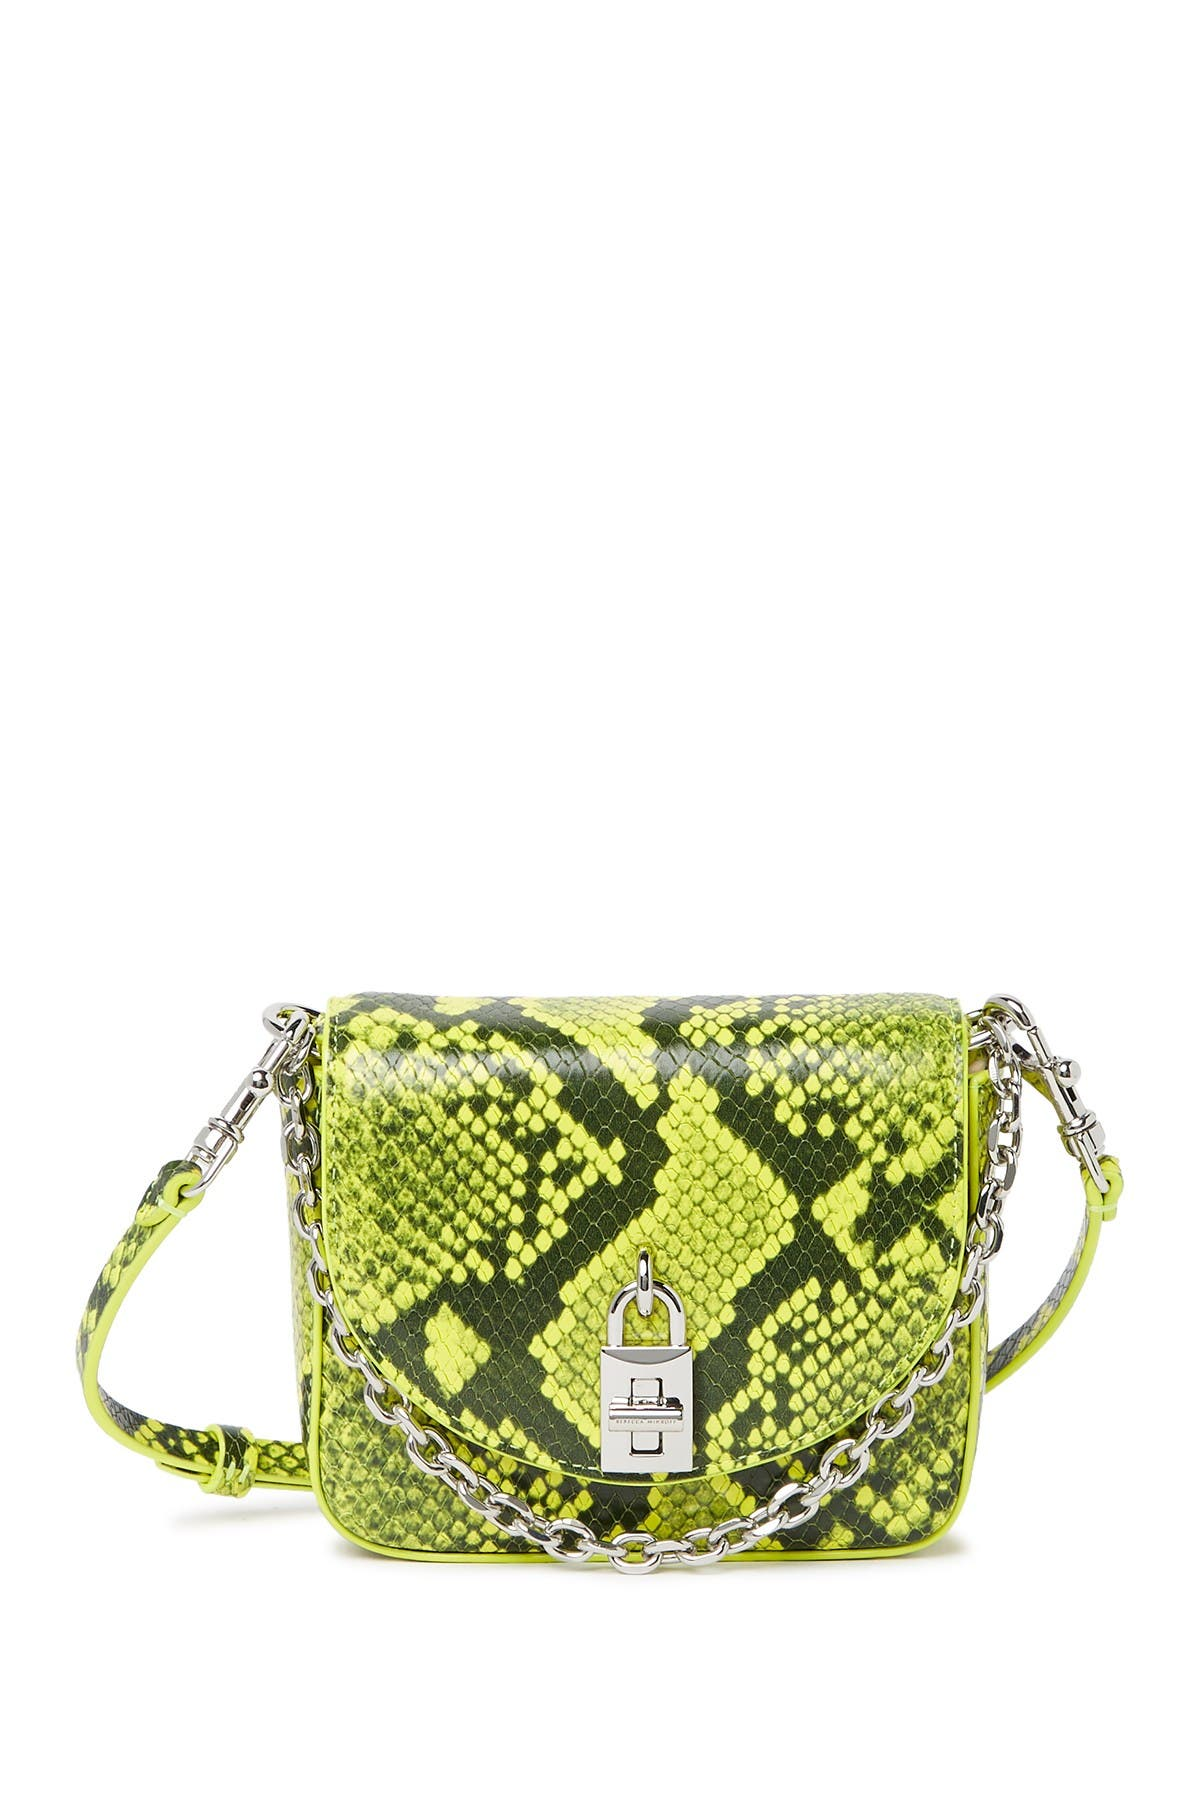 Image of Rebecca Minkoff Love Too Micro Crossbody Bag